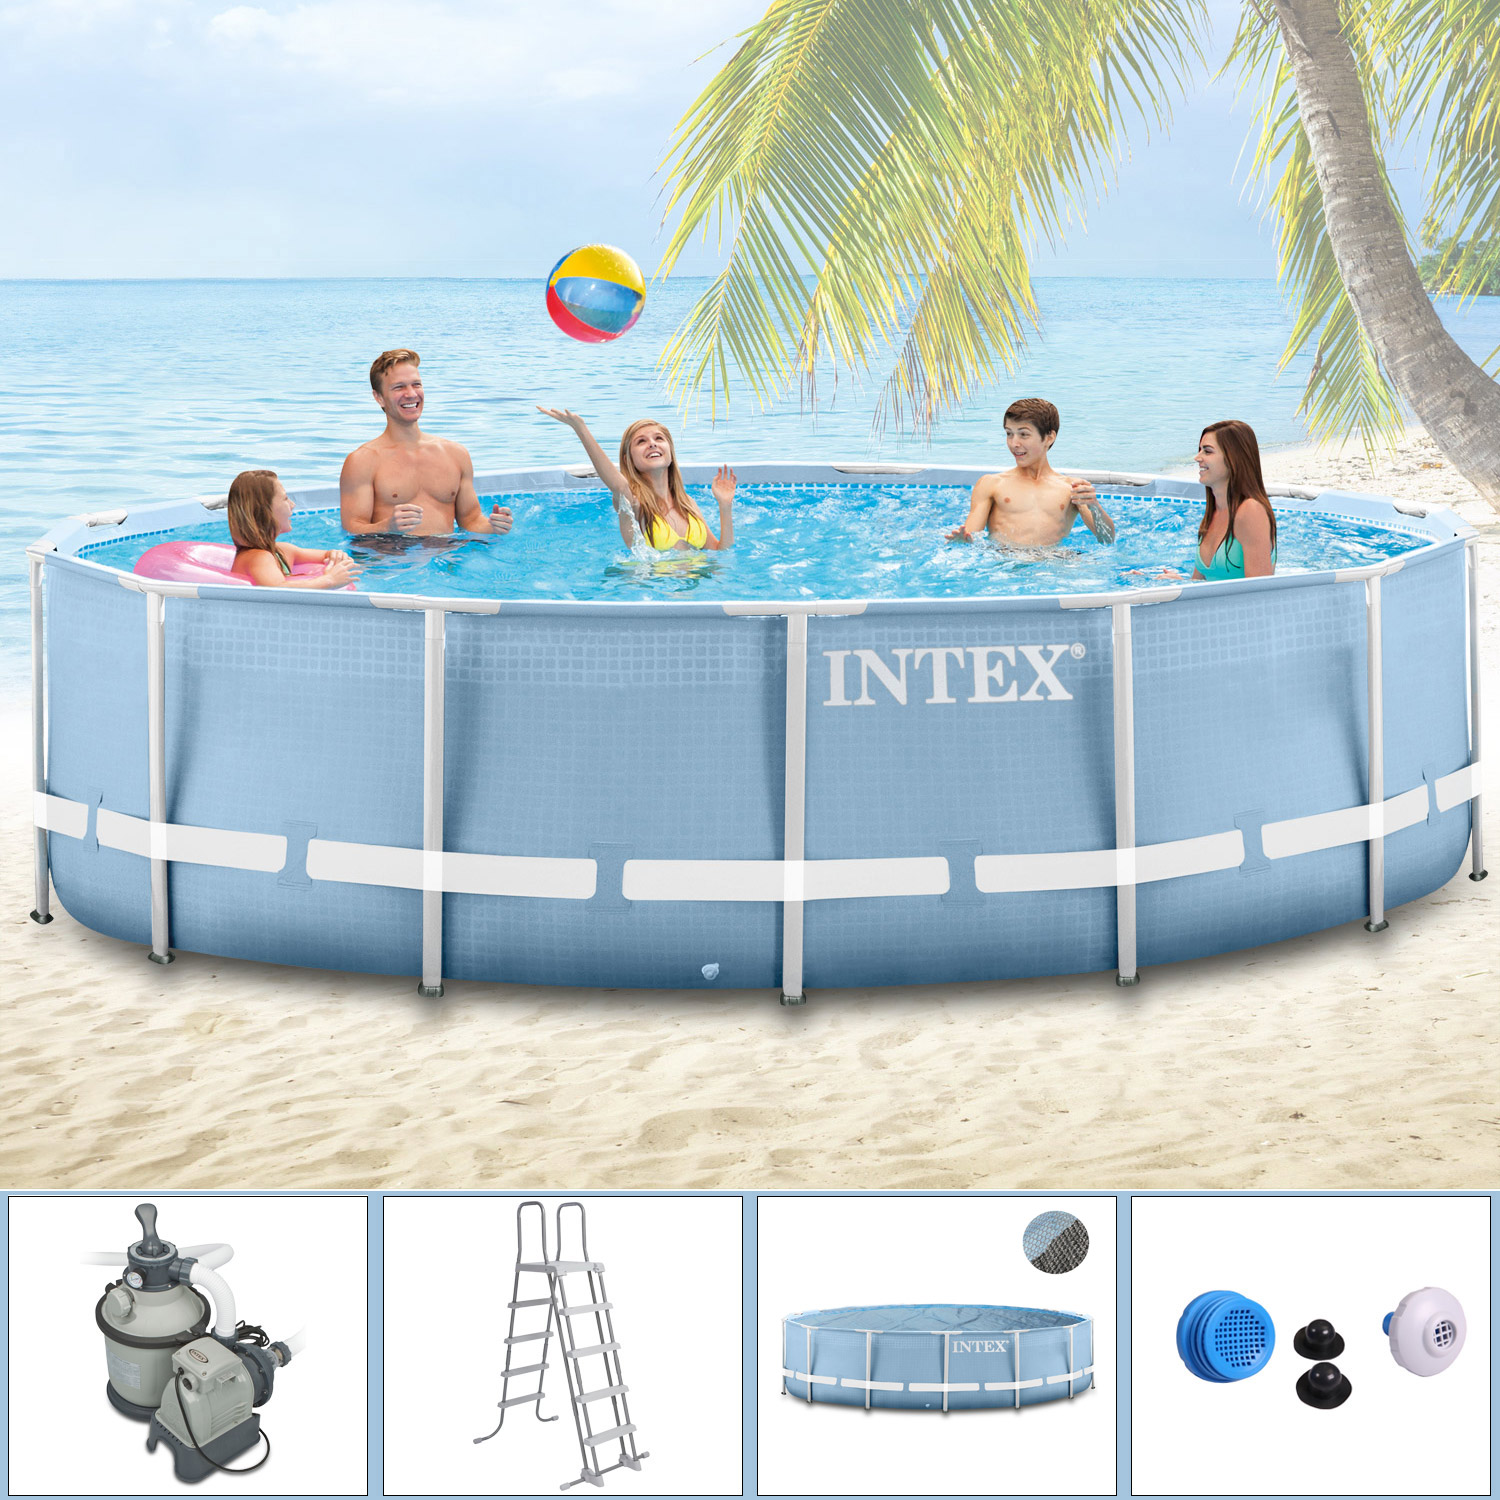 intex 366x122 komplettset swimming pool schwimmbad frame metal stahlwand ebay. Black Bedroom Furniture Sets. Home Design Ideas